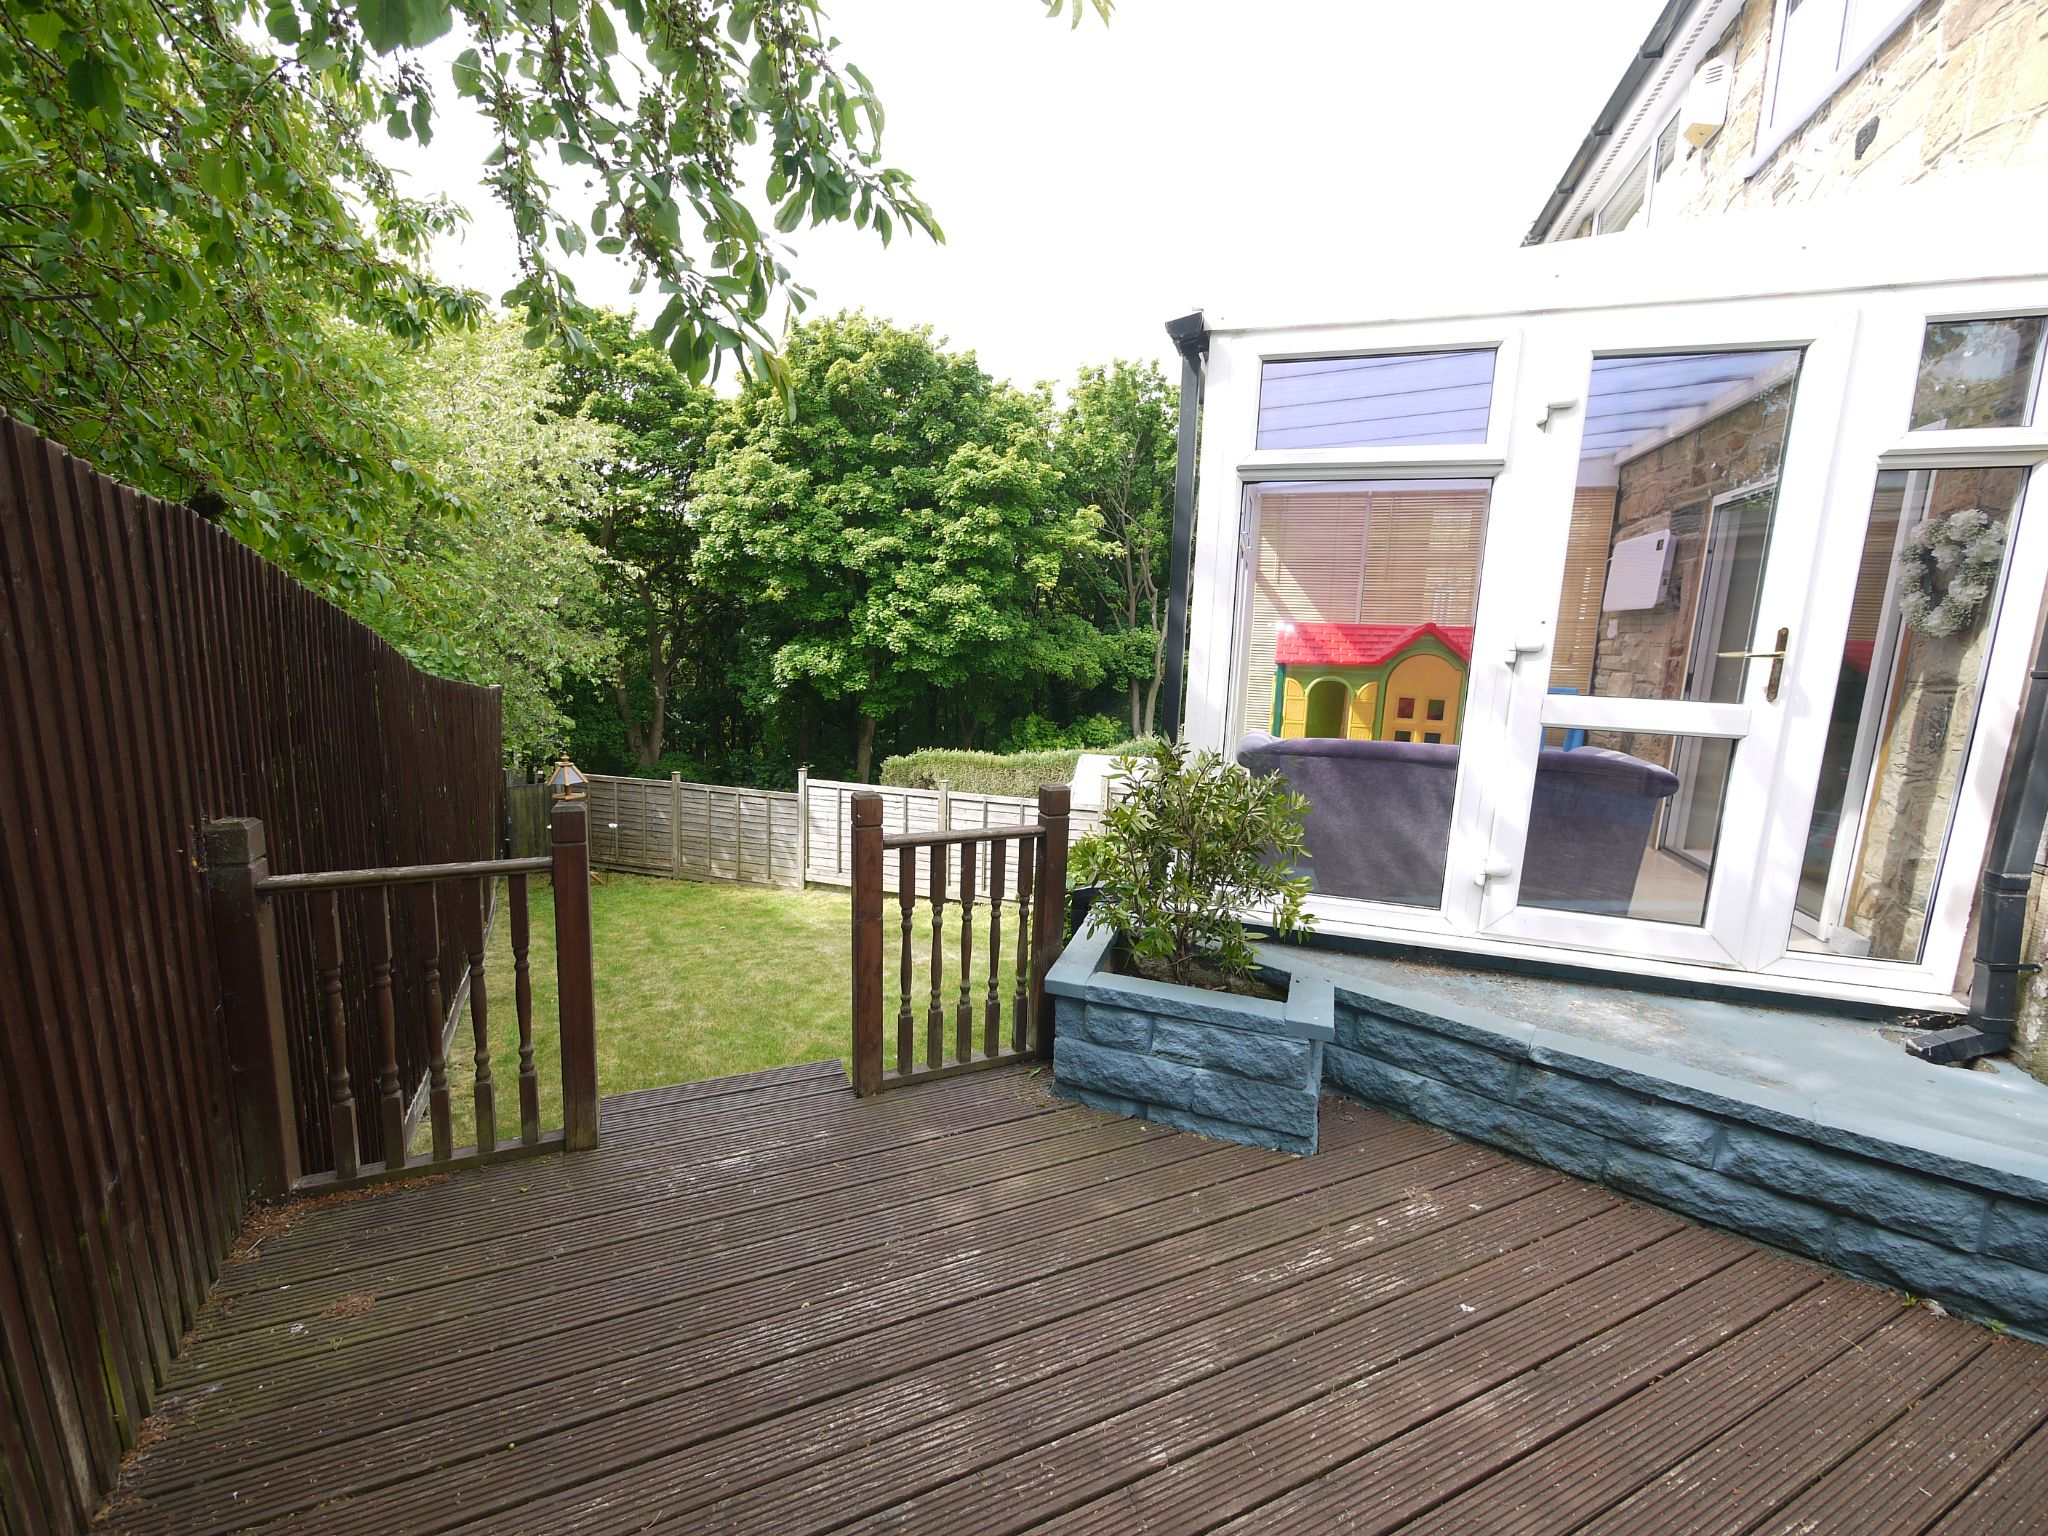 4 bedroom semi-detached house For Sale in Brighouse - Garden.